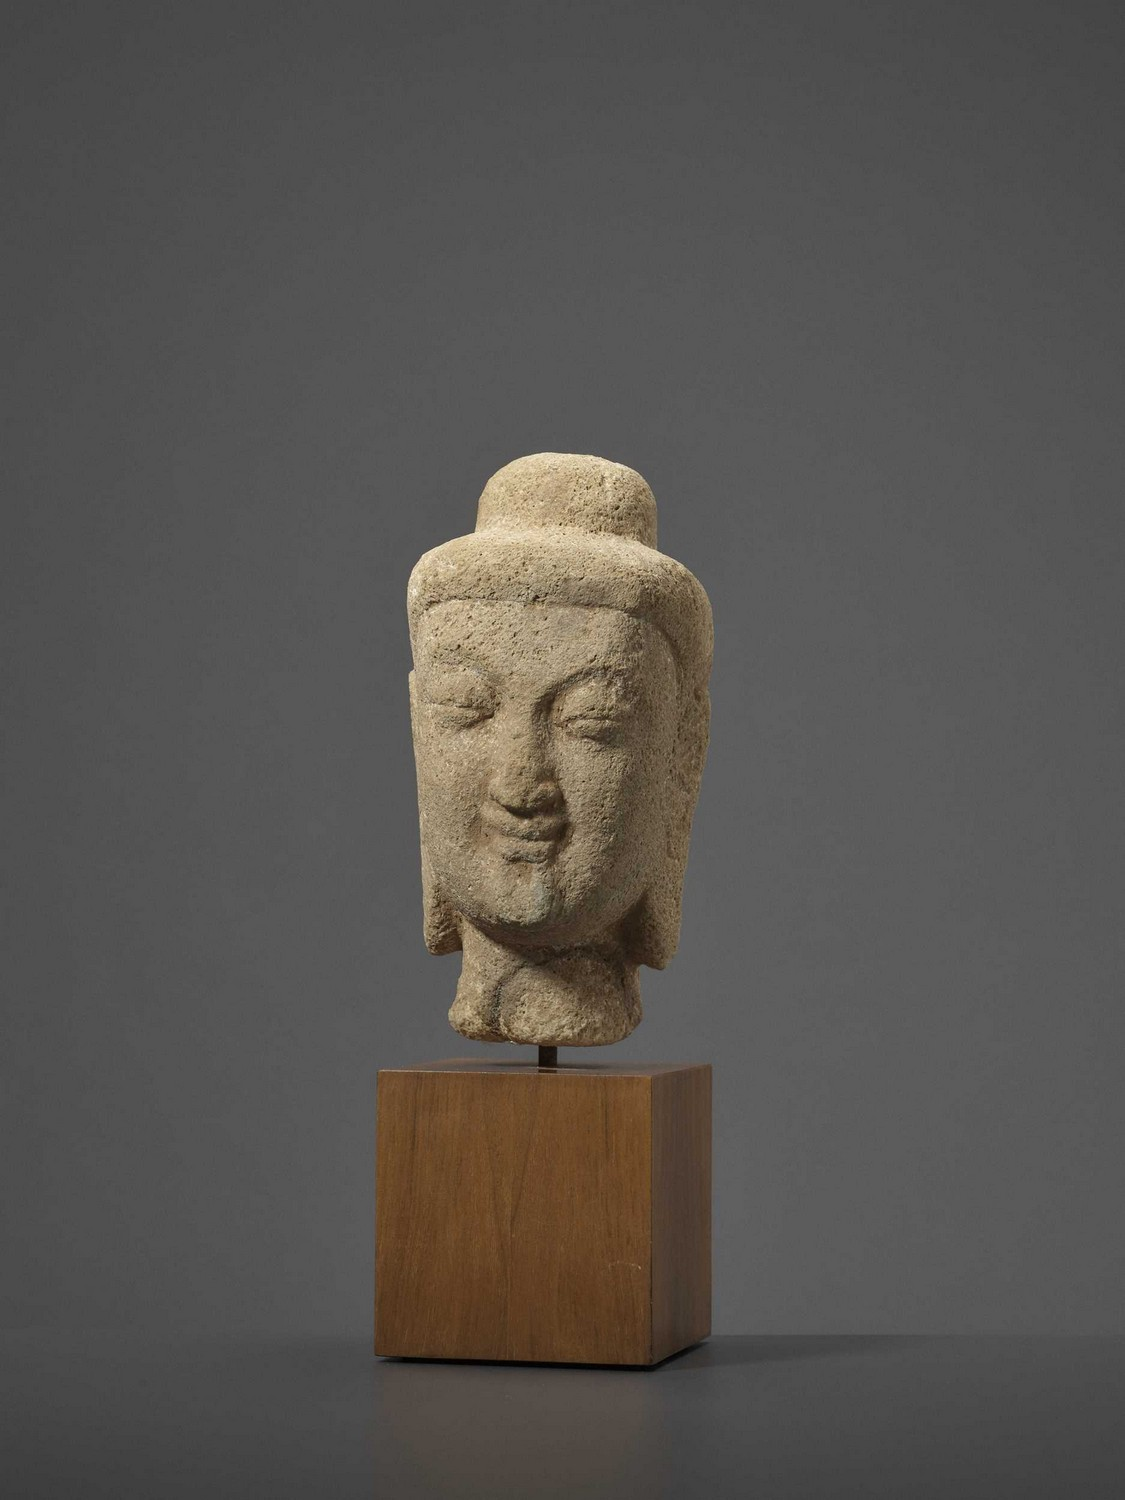 Vente Asian Art Discoveries Day 2 - Chinese Art chez Galerie Zacke : 509 lots